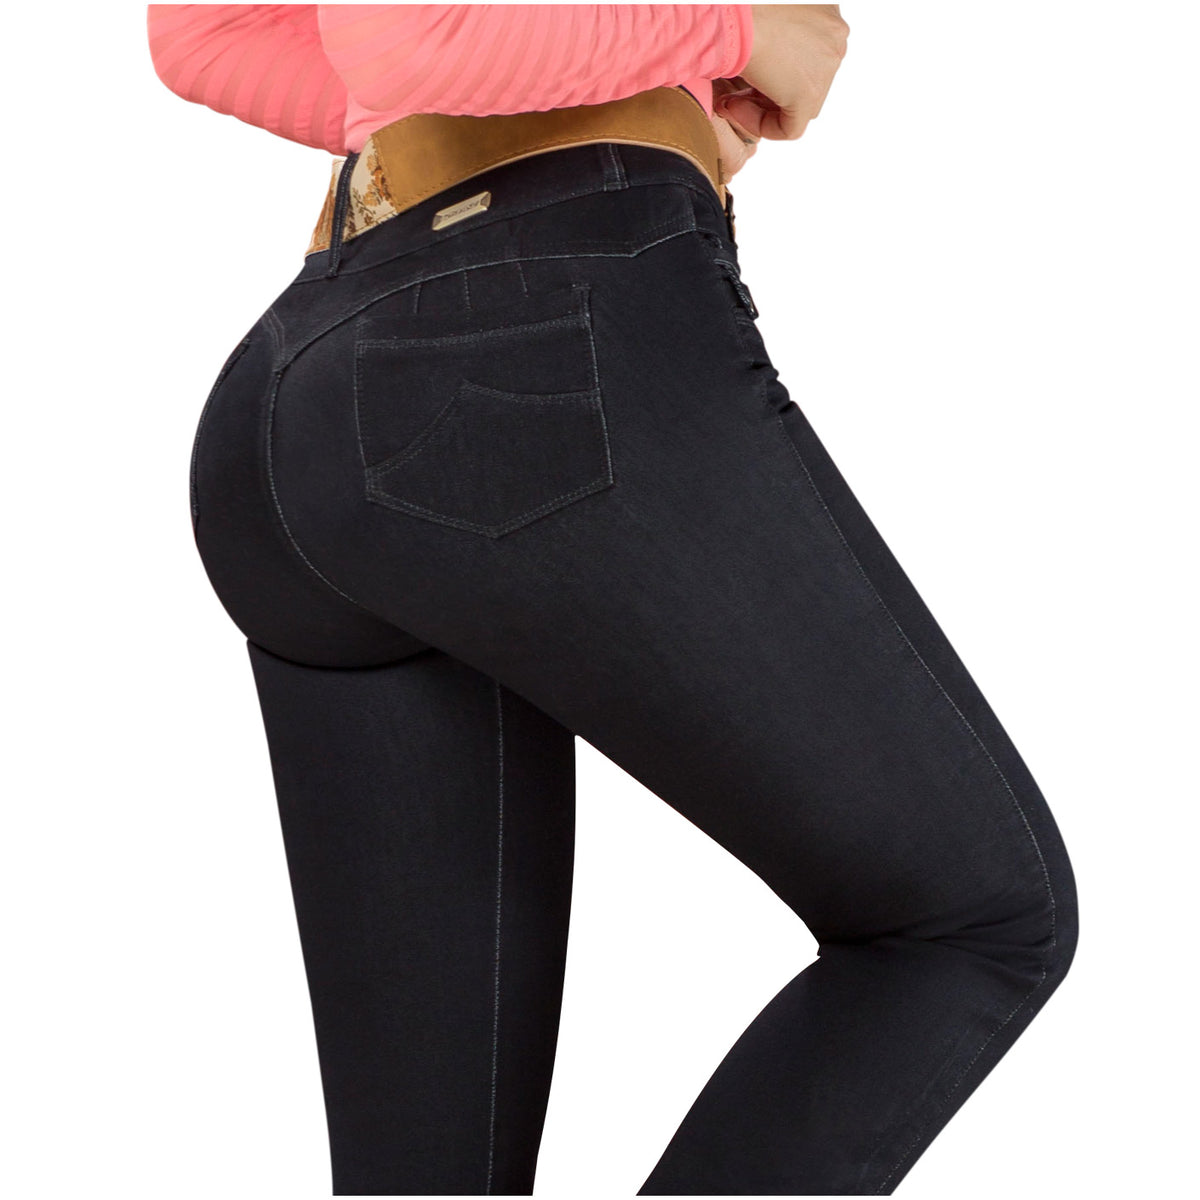 Draxy Women Colombian Sexy High Waisted Bell Bottom Butt Lifting Jeans